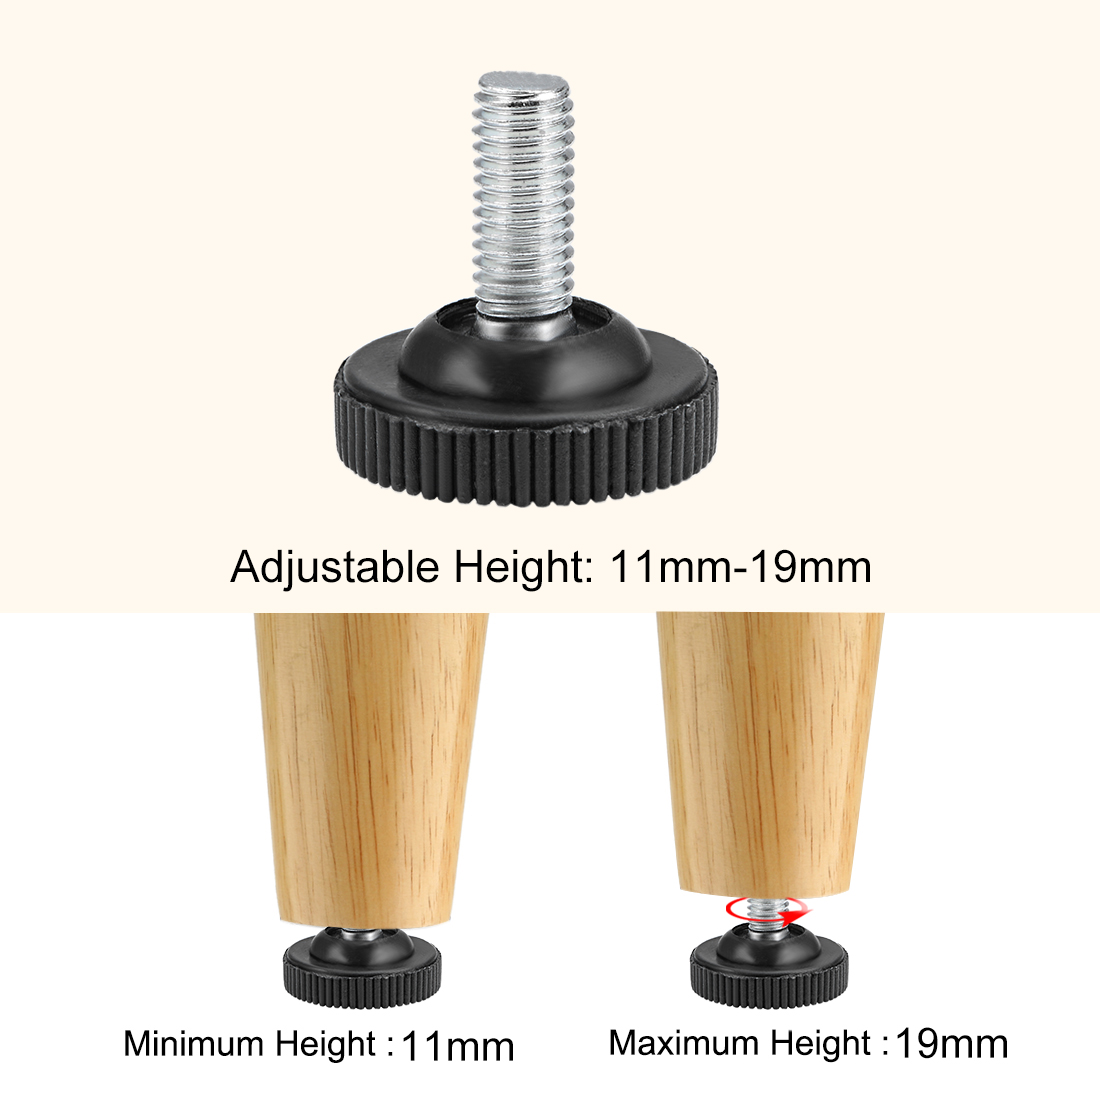 Furniture Levelers, 11mm to 19mm Adjustable Height M8 x 18mm Threaded, 12Pcs - image 3 of 4